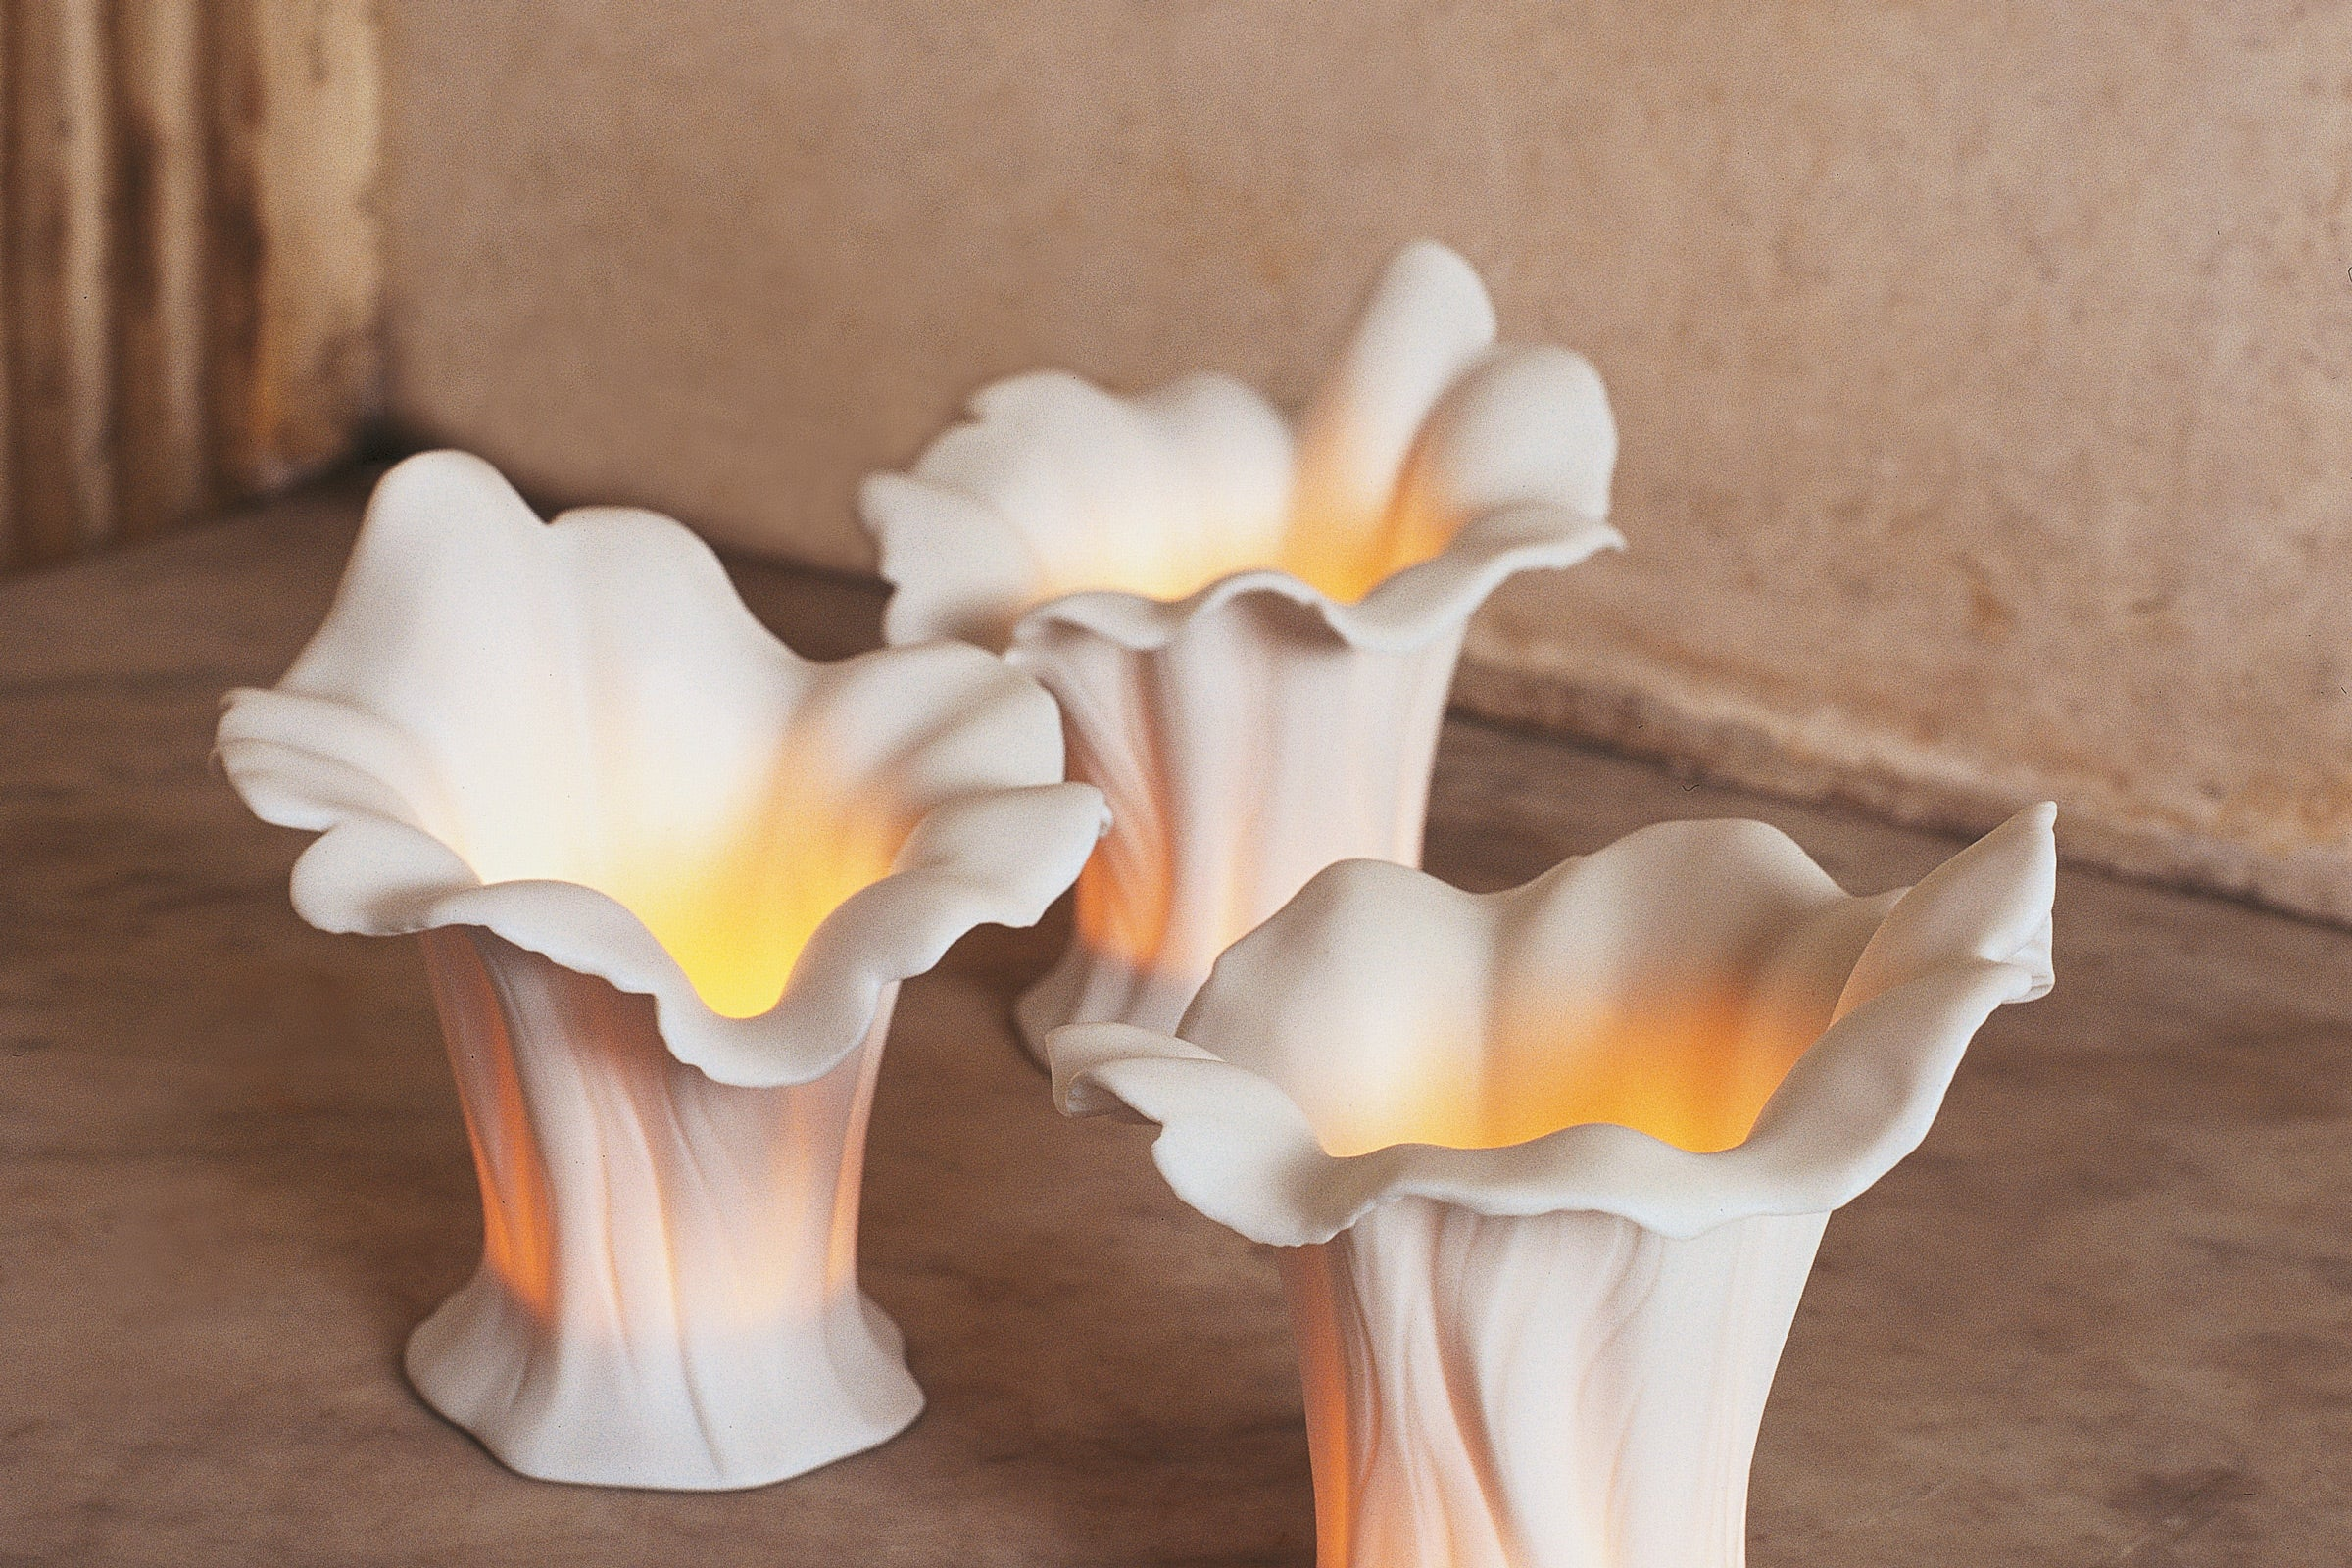 Lladro Porcelain Tea light Designed by London Based Studio Bodo Sperlein